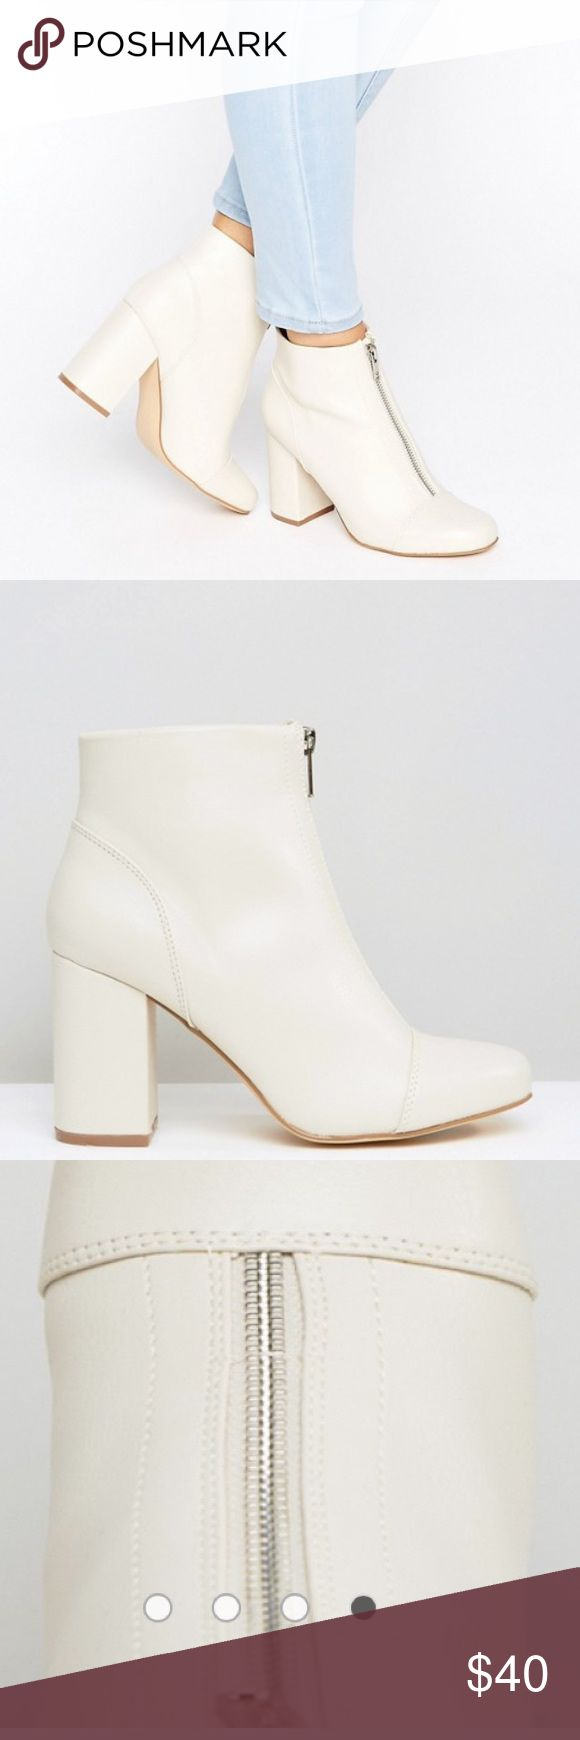 New Look Zip Front Leather Look Ankle Boot Brand new never worn size 9 ASOS Shoes Heeled Boots